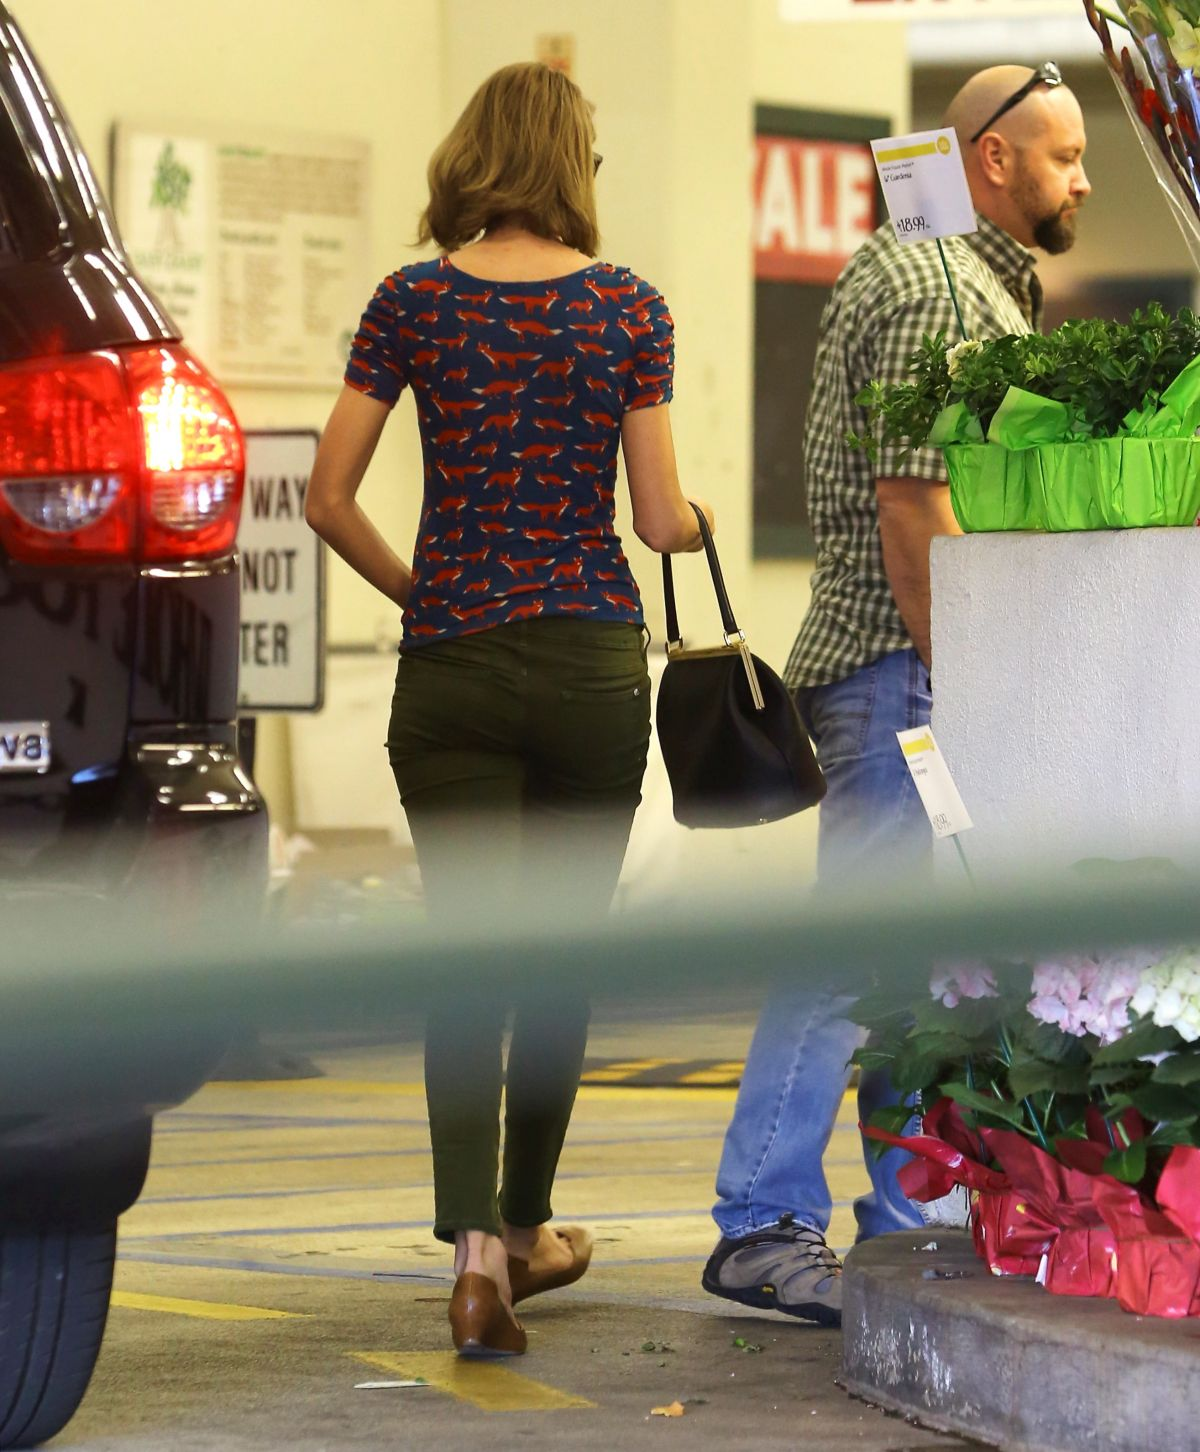 Los Angeles Supermarket: TAYLOR SWIFT Shoping Grocery At A Store In Los Angeles